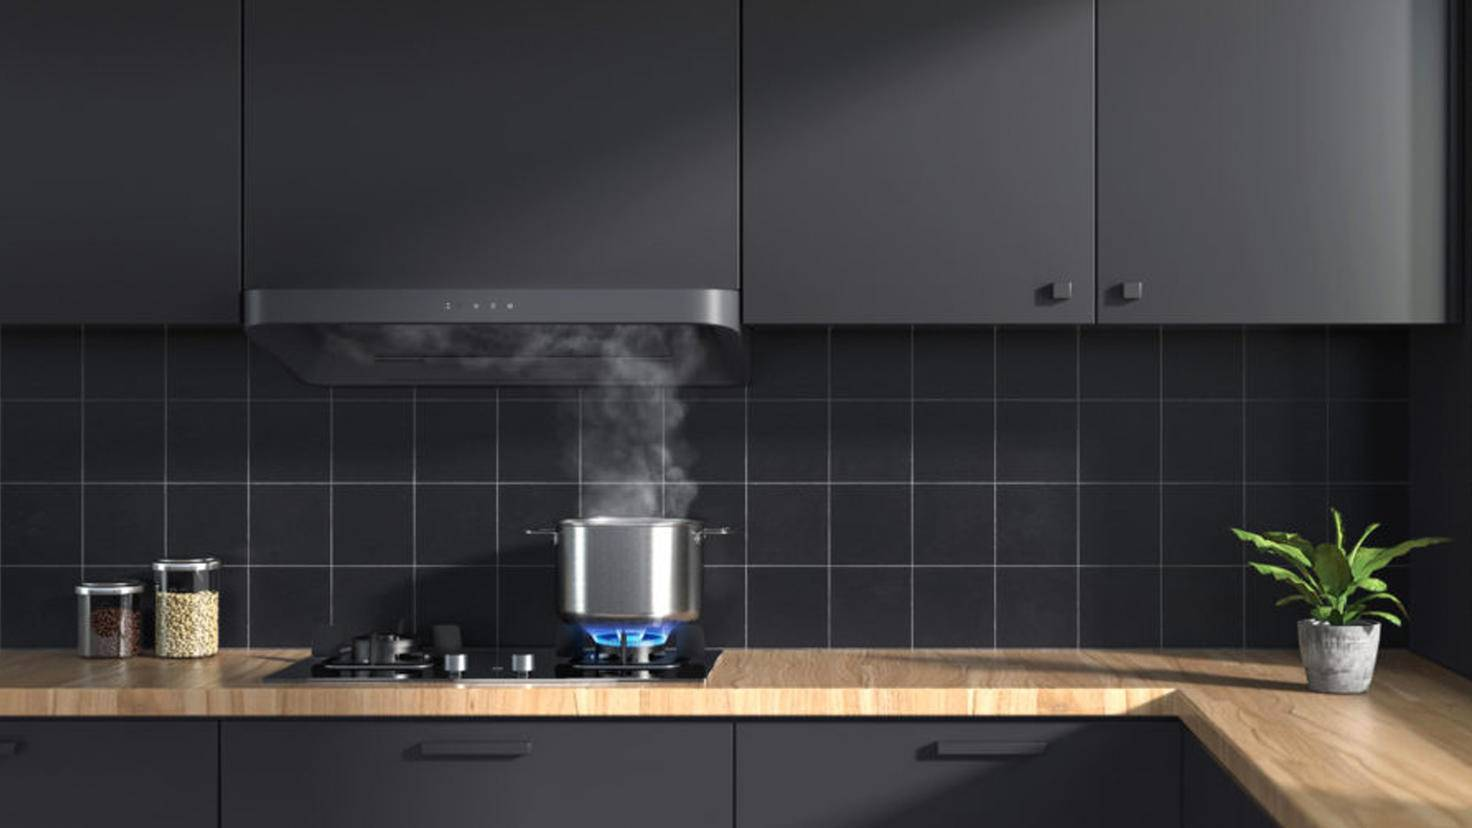 Mi Smart Kitchen Exhaust Hood and Stove Top Set-Dunstabzugshaube Herd-Xiaomi